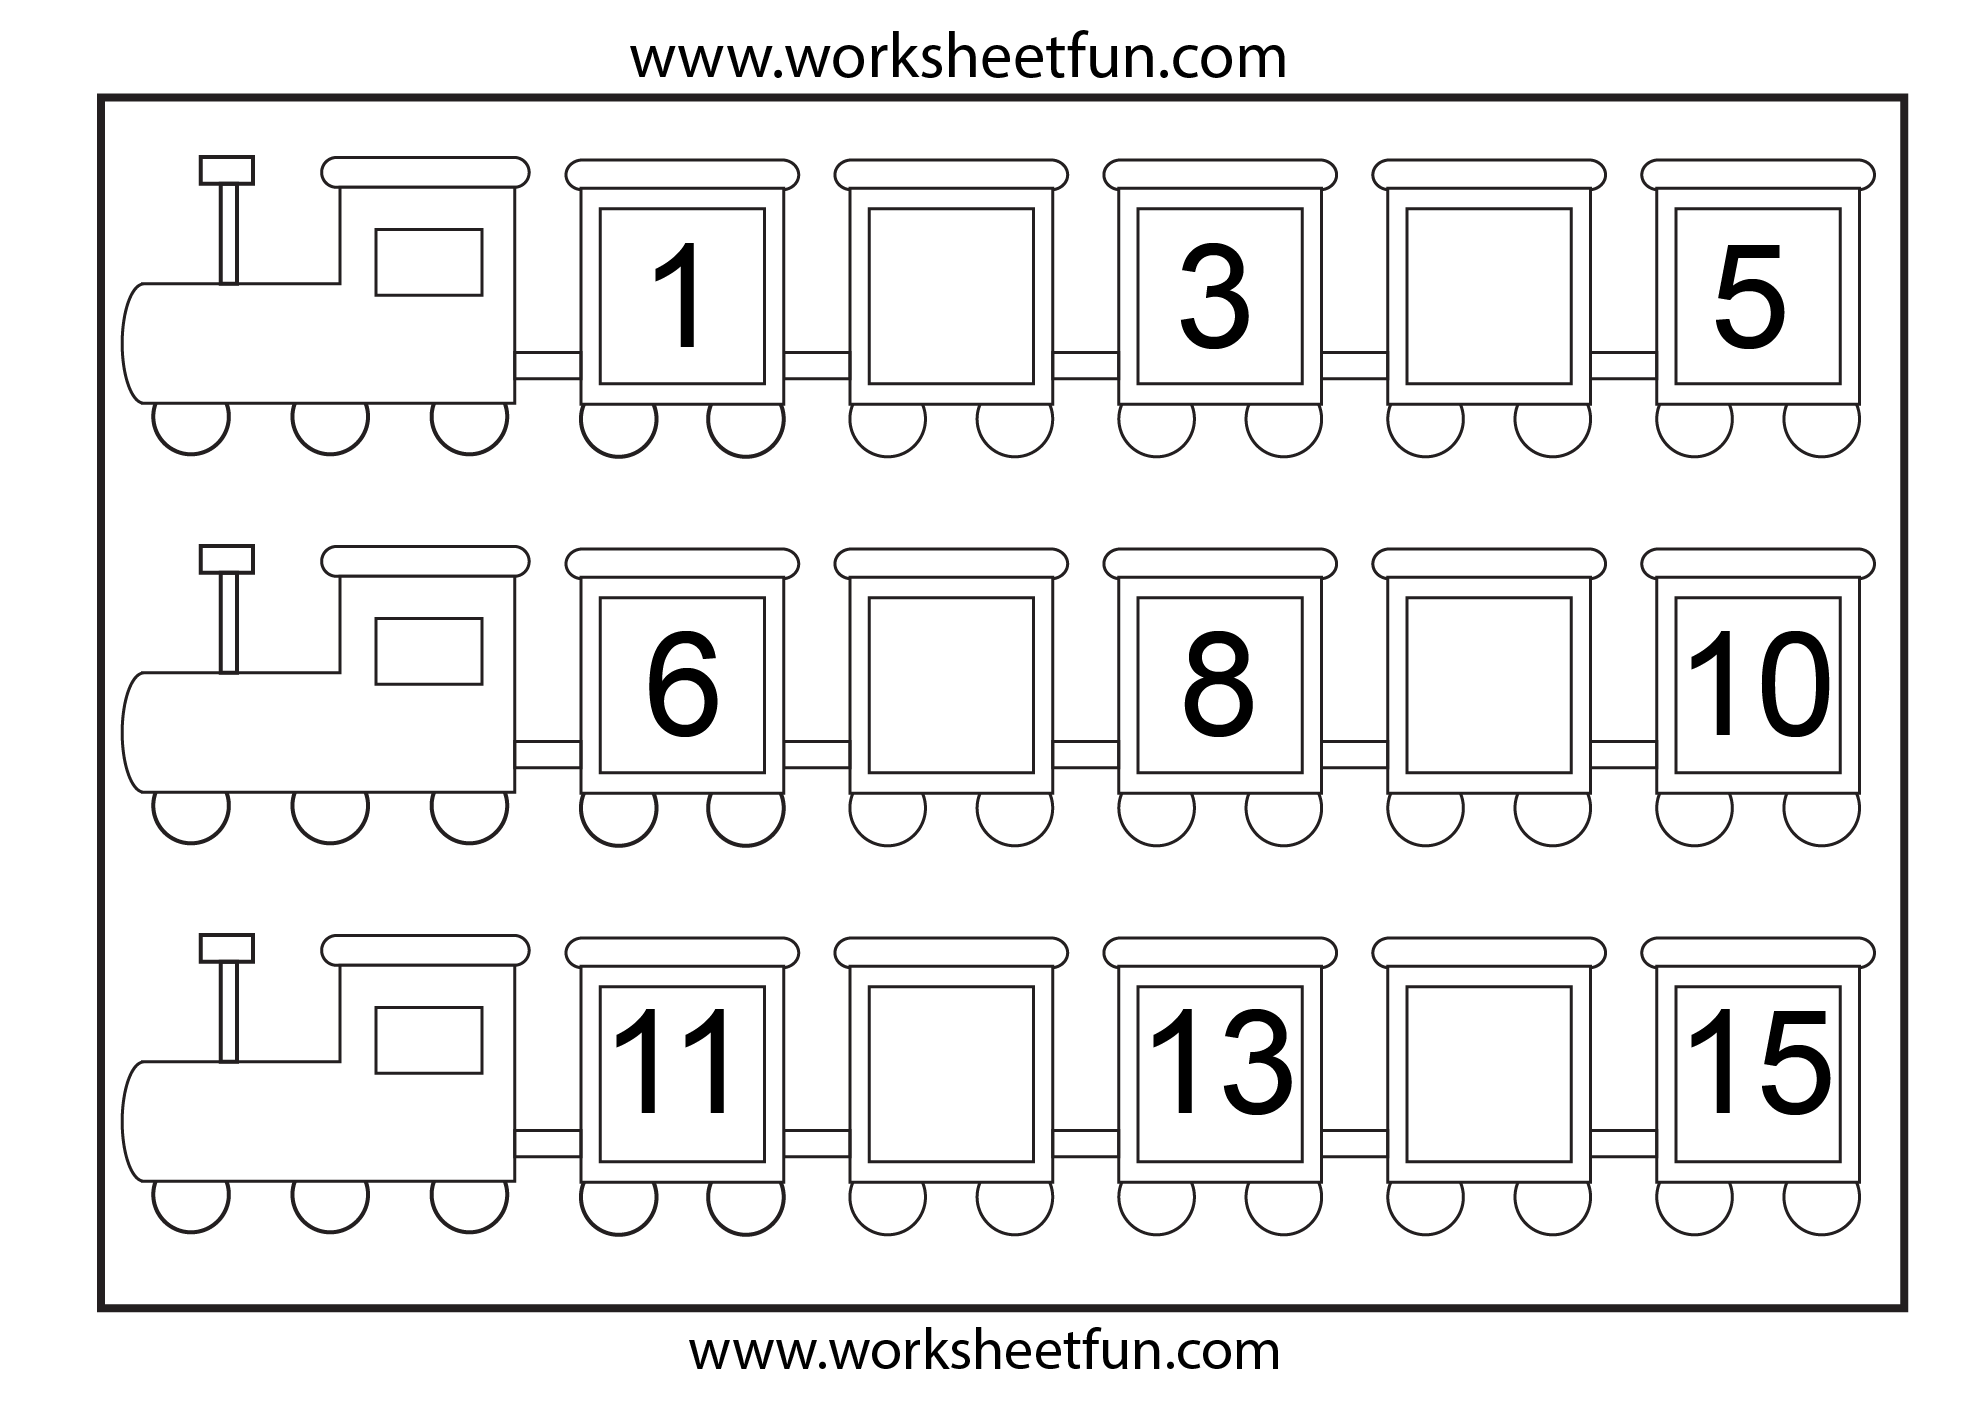 Printables Missing Number Worksheets 1000 images about worksheets on pinterest learn to count preschool and science worksheets